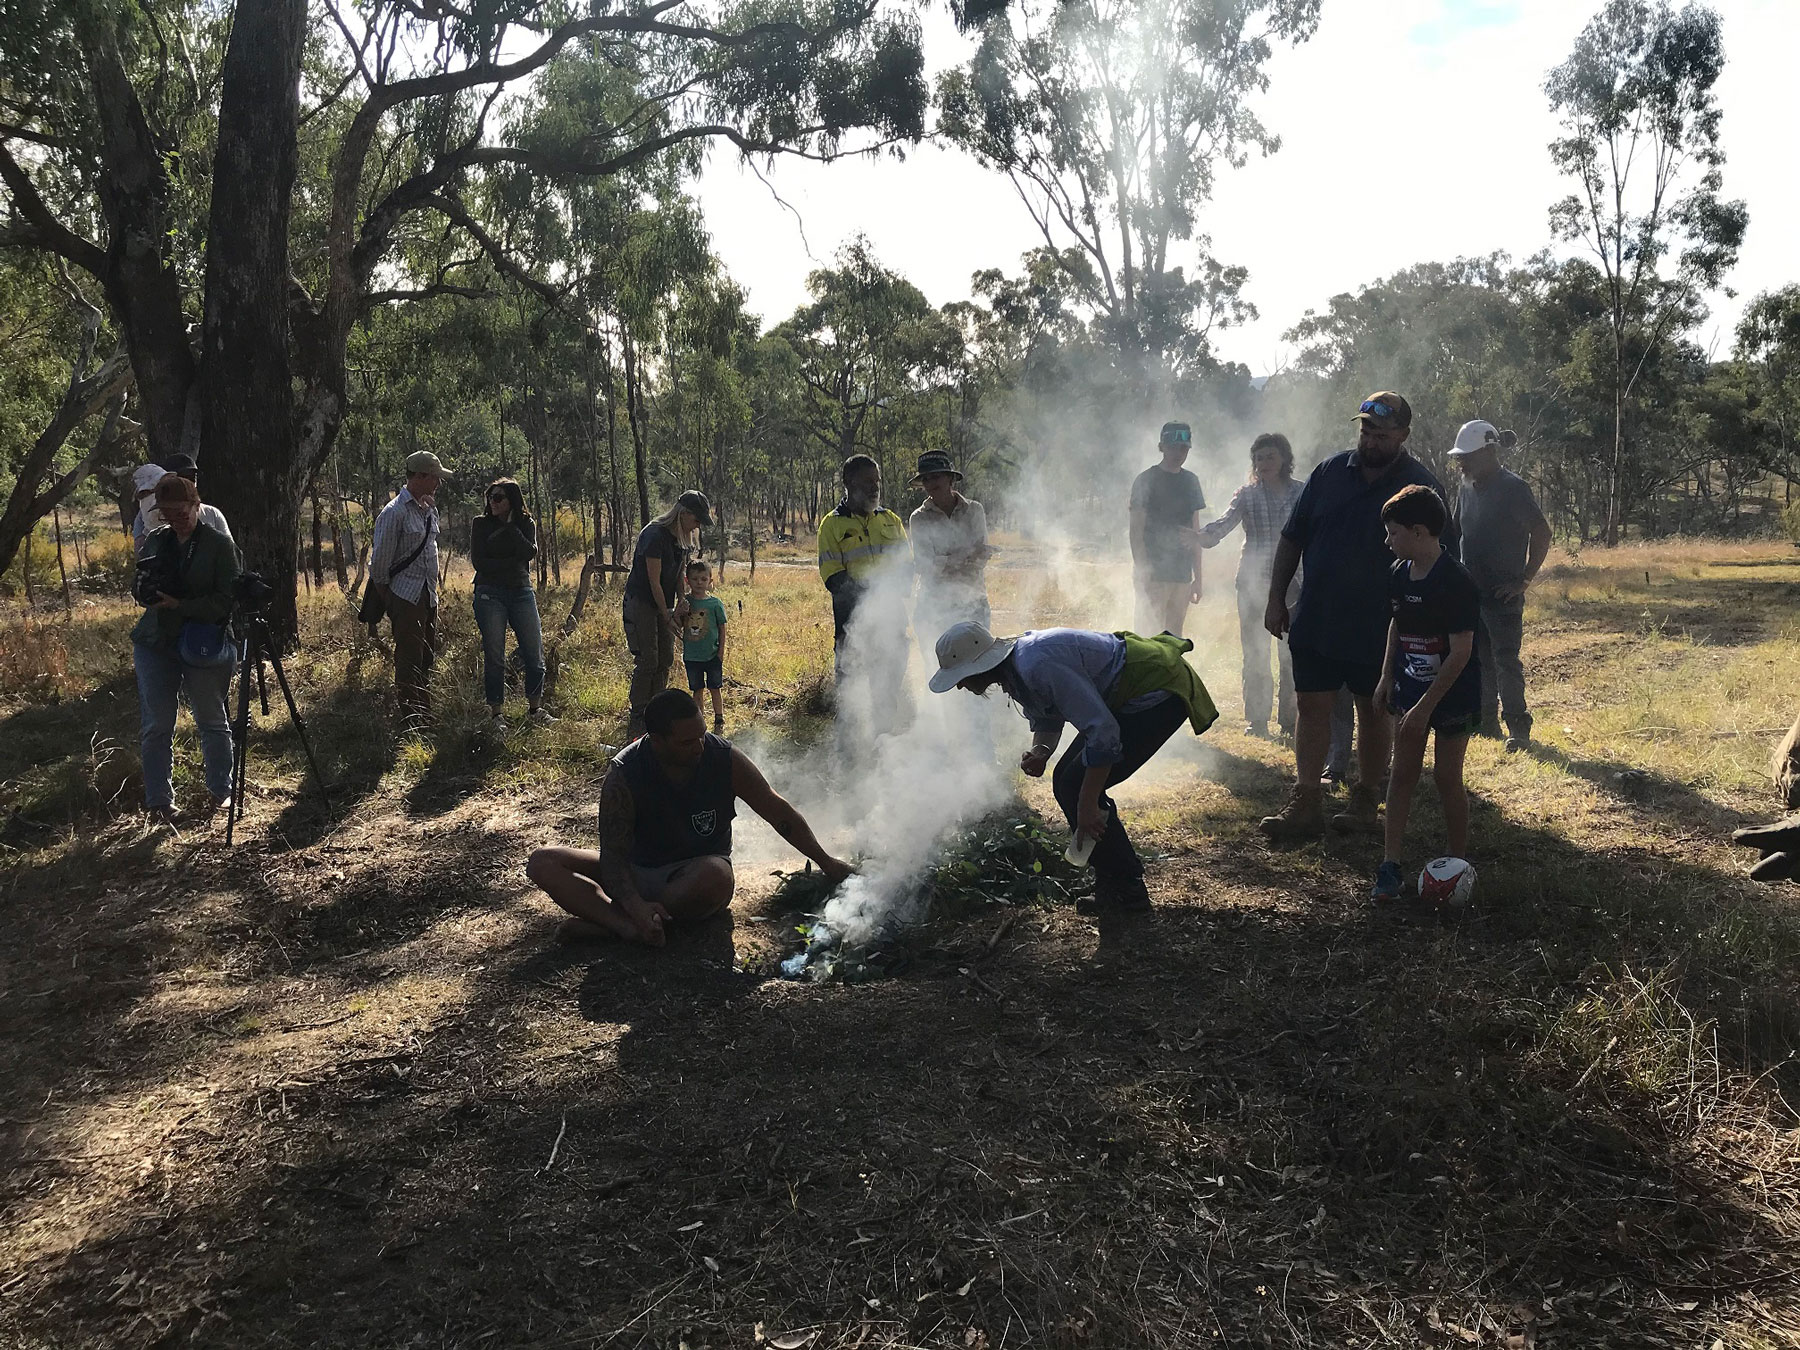 Smoke rises from a small fire tended by man sitting on the ground with people chatting and trees in the background